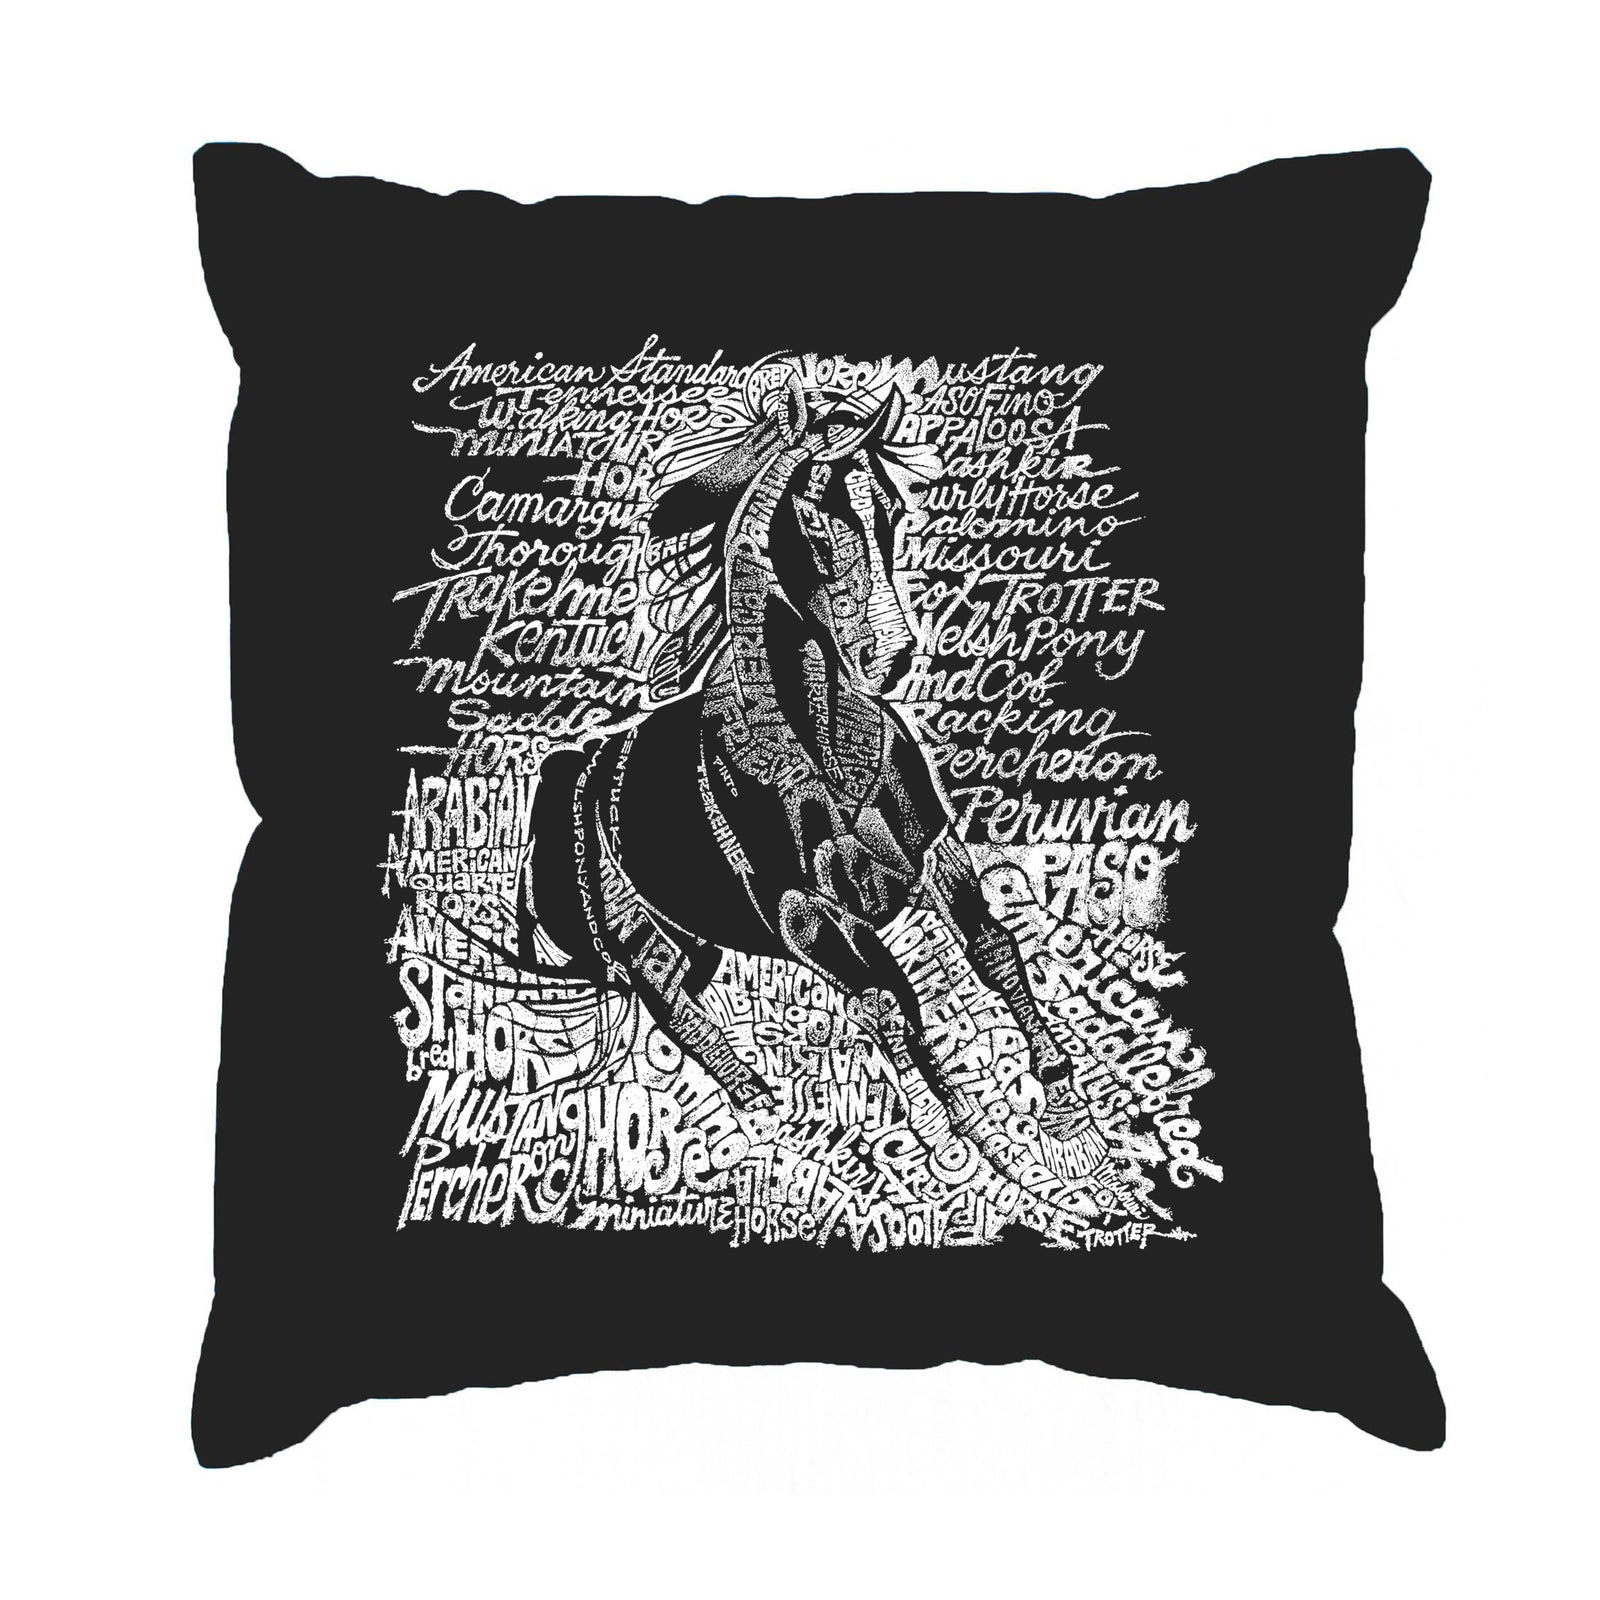 Throw Pillow Cover - POPULAR HORSE BREEDS